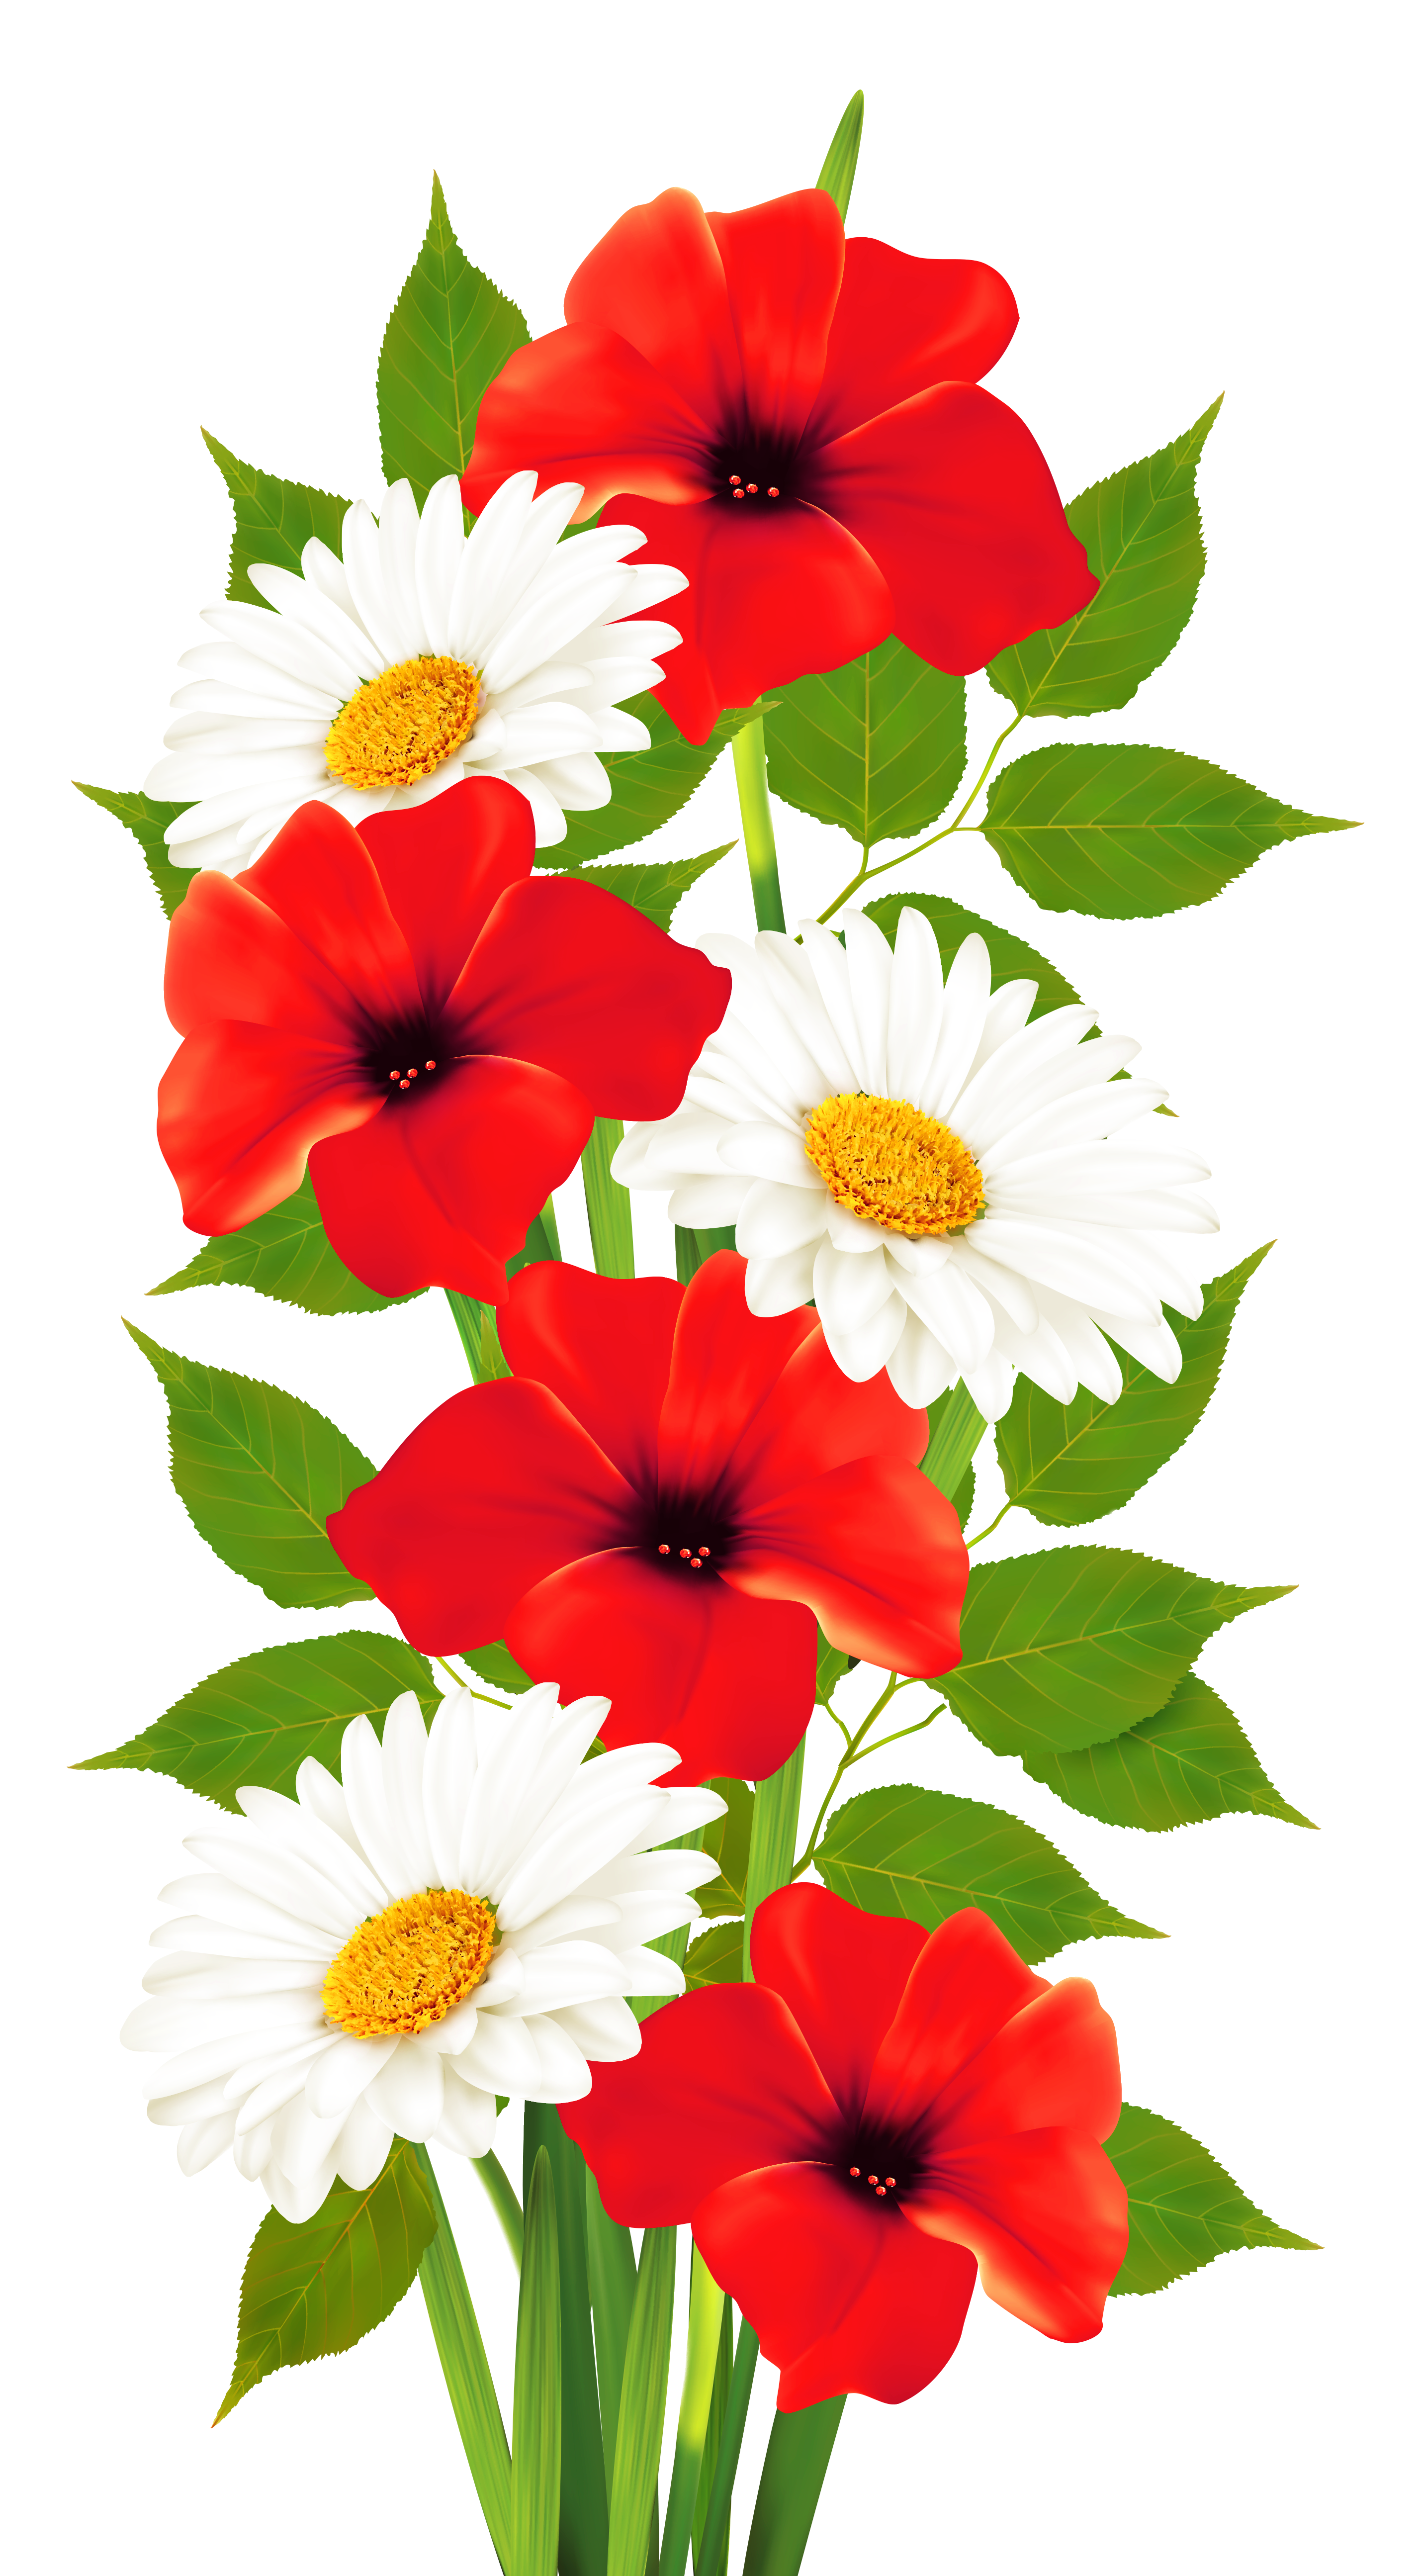 Daisy clipart banner. Poppies and daisies transparent